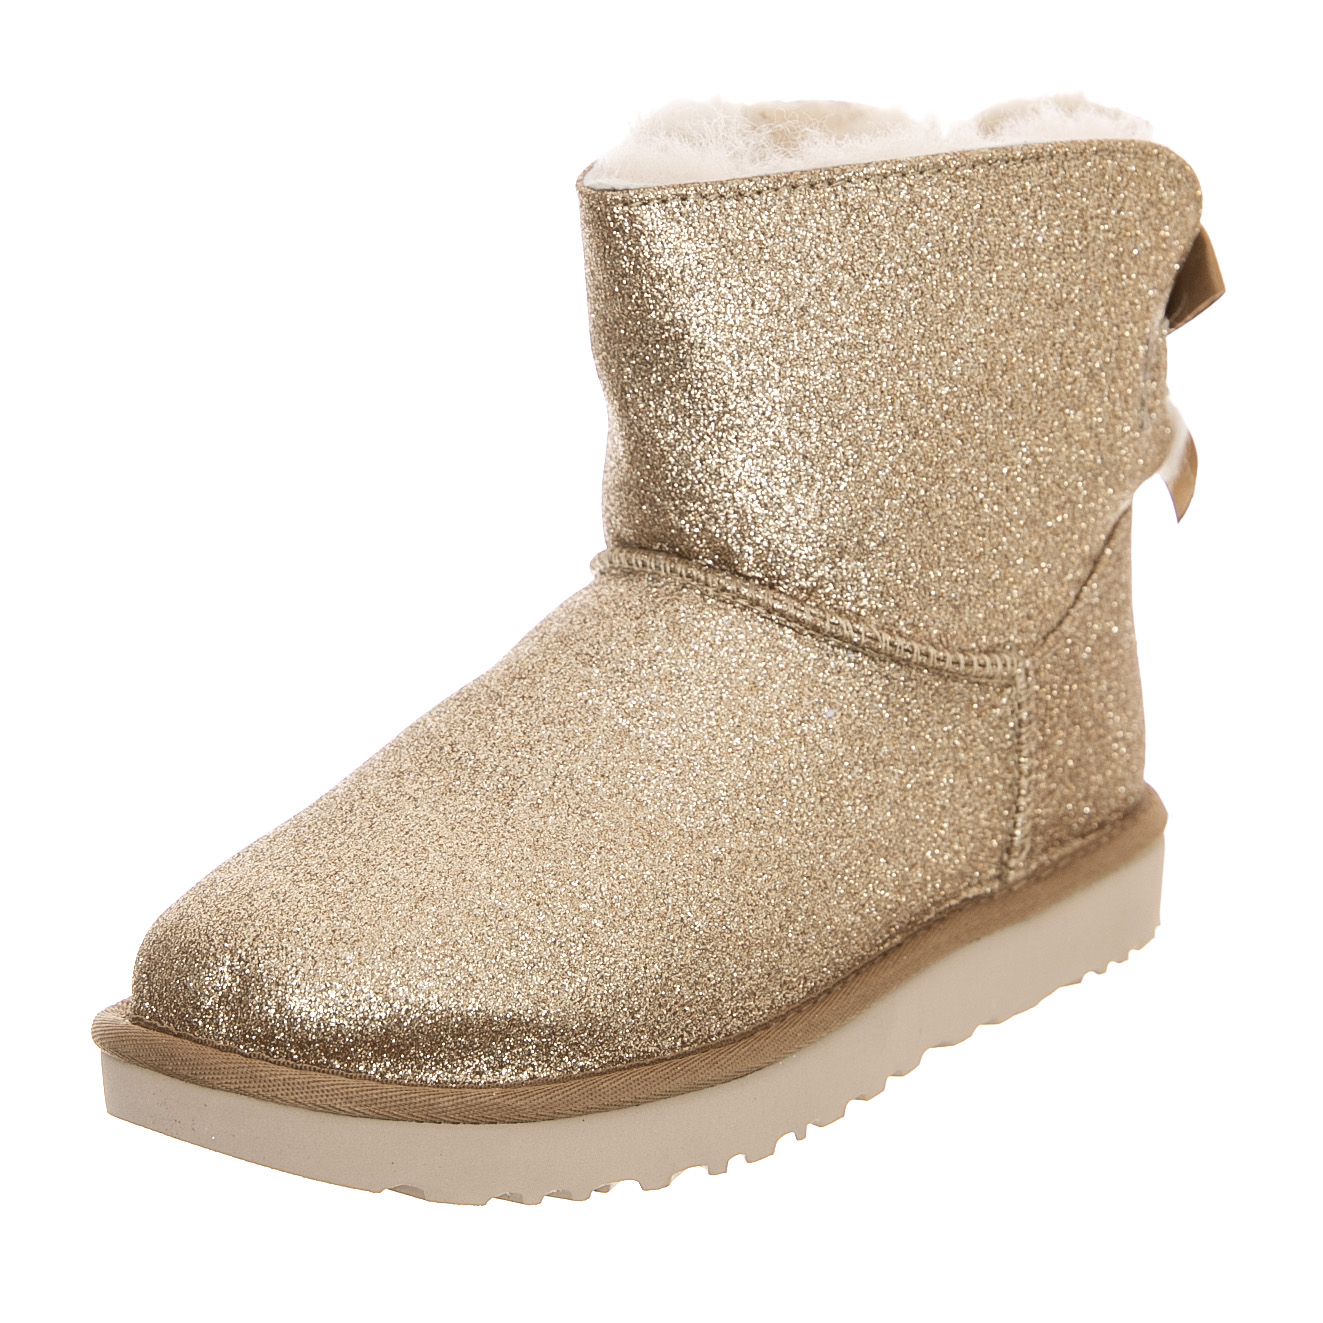 2514f2d1b Ugg Mini Bailey Bow Sparkle - Gold - Women's Ankle Boots Gold | eBay